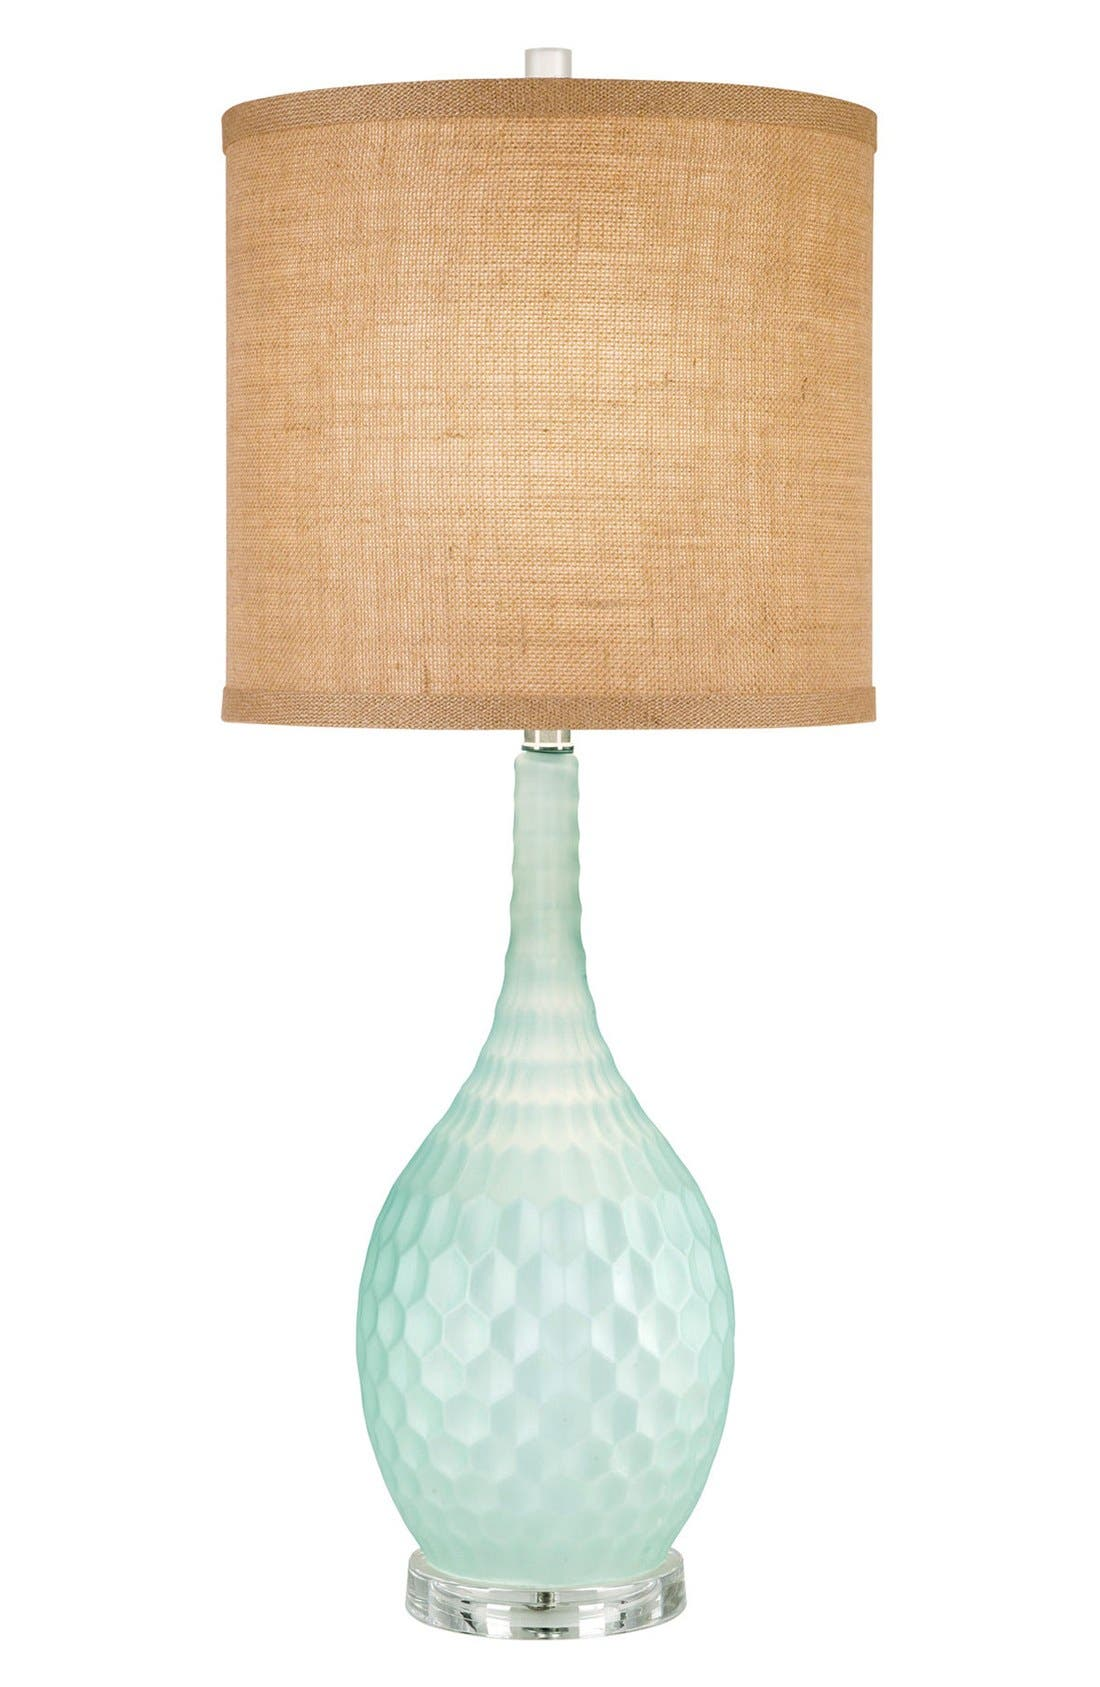 JAlexander 'Seafoam' Glass Table Lamp,                             Main thumbnail 1, color,                             Blue